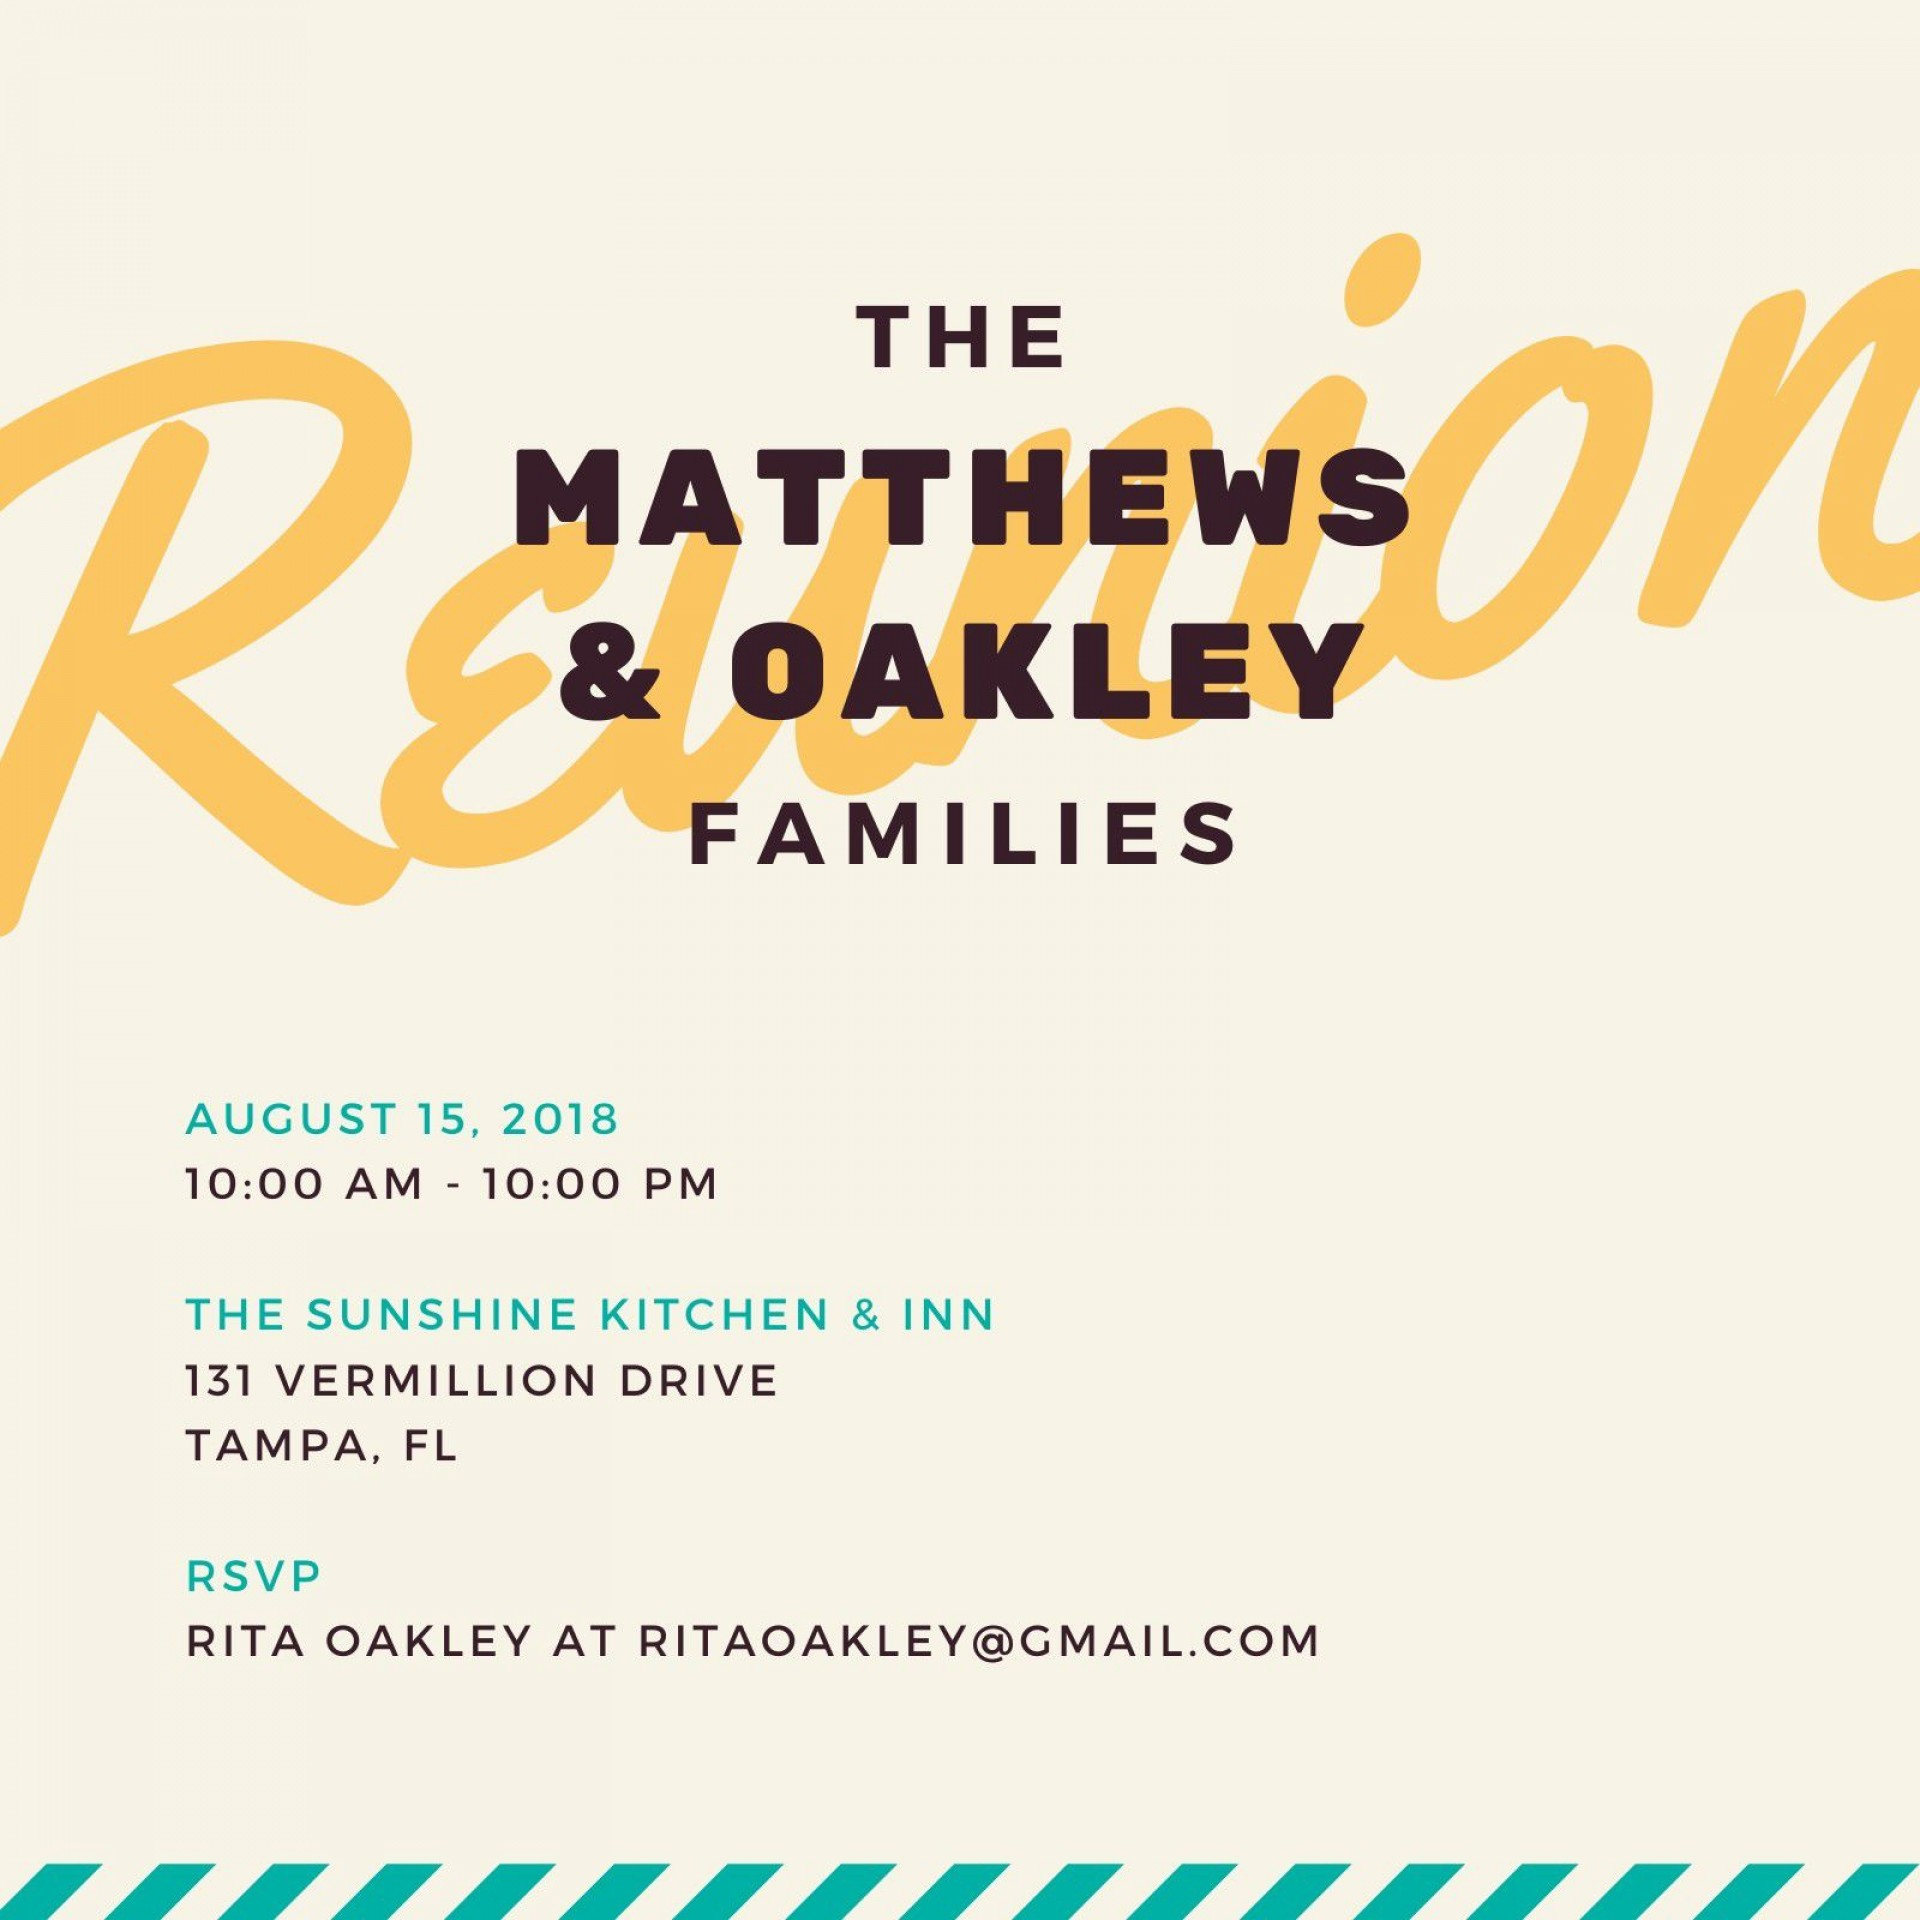 008 Incredible Family Reunion Invitation Template Free Design  For Word Online1920